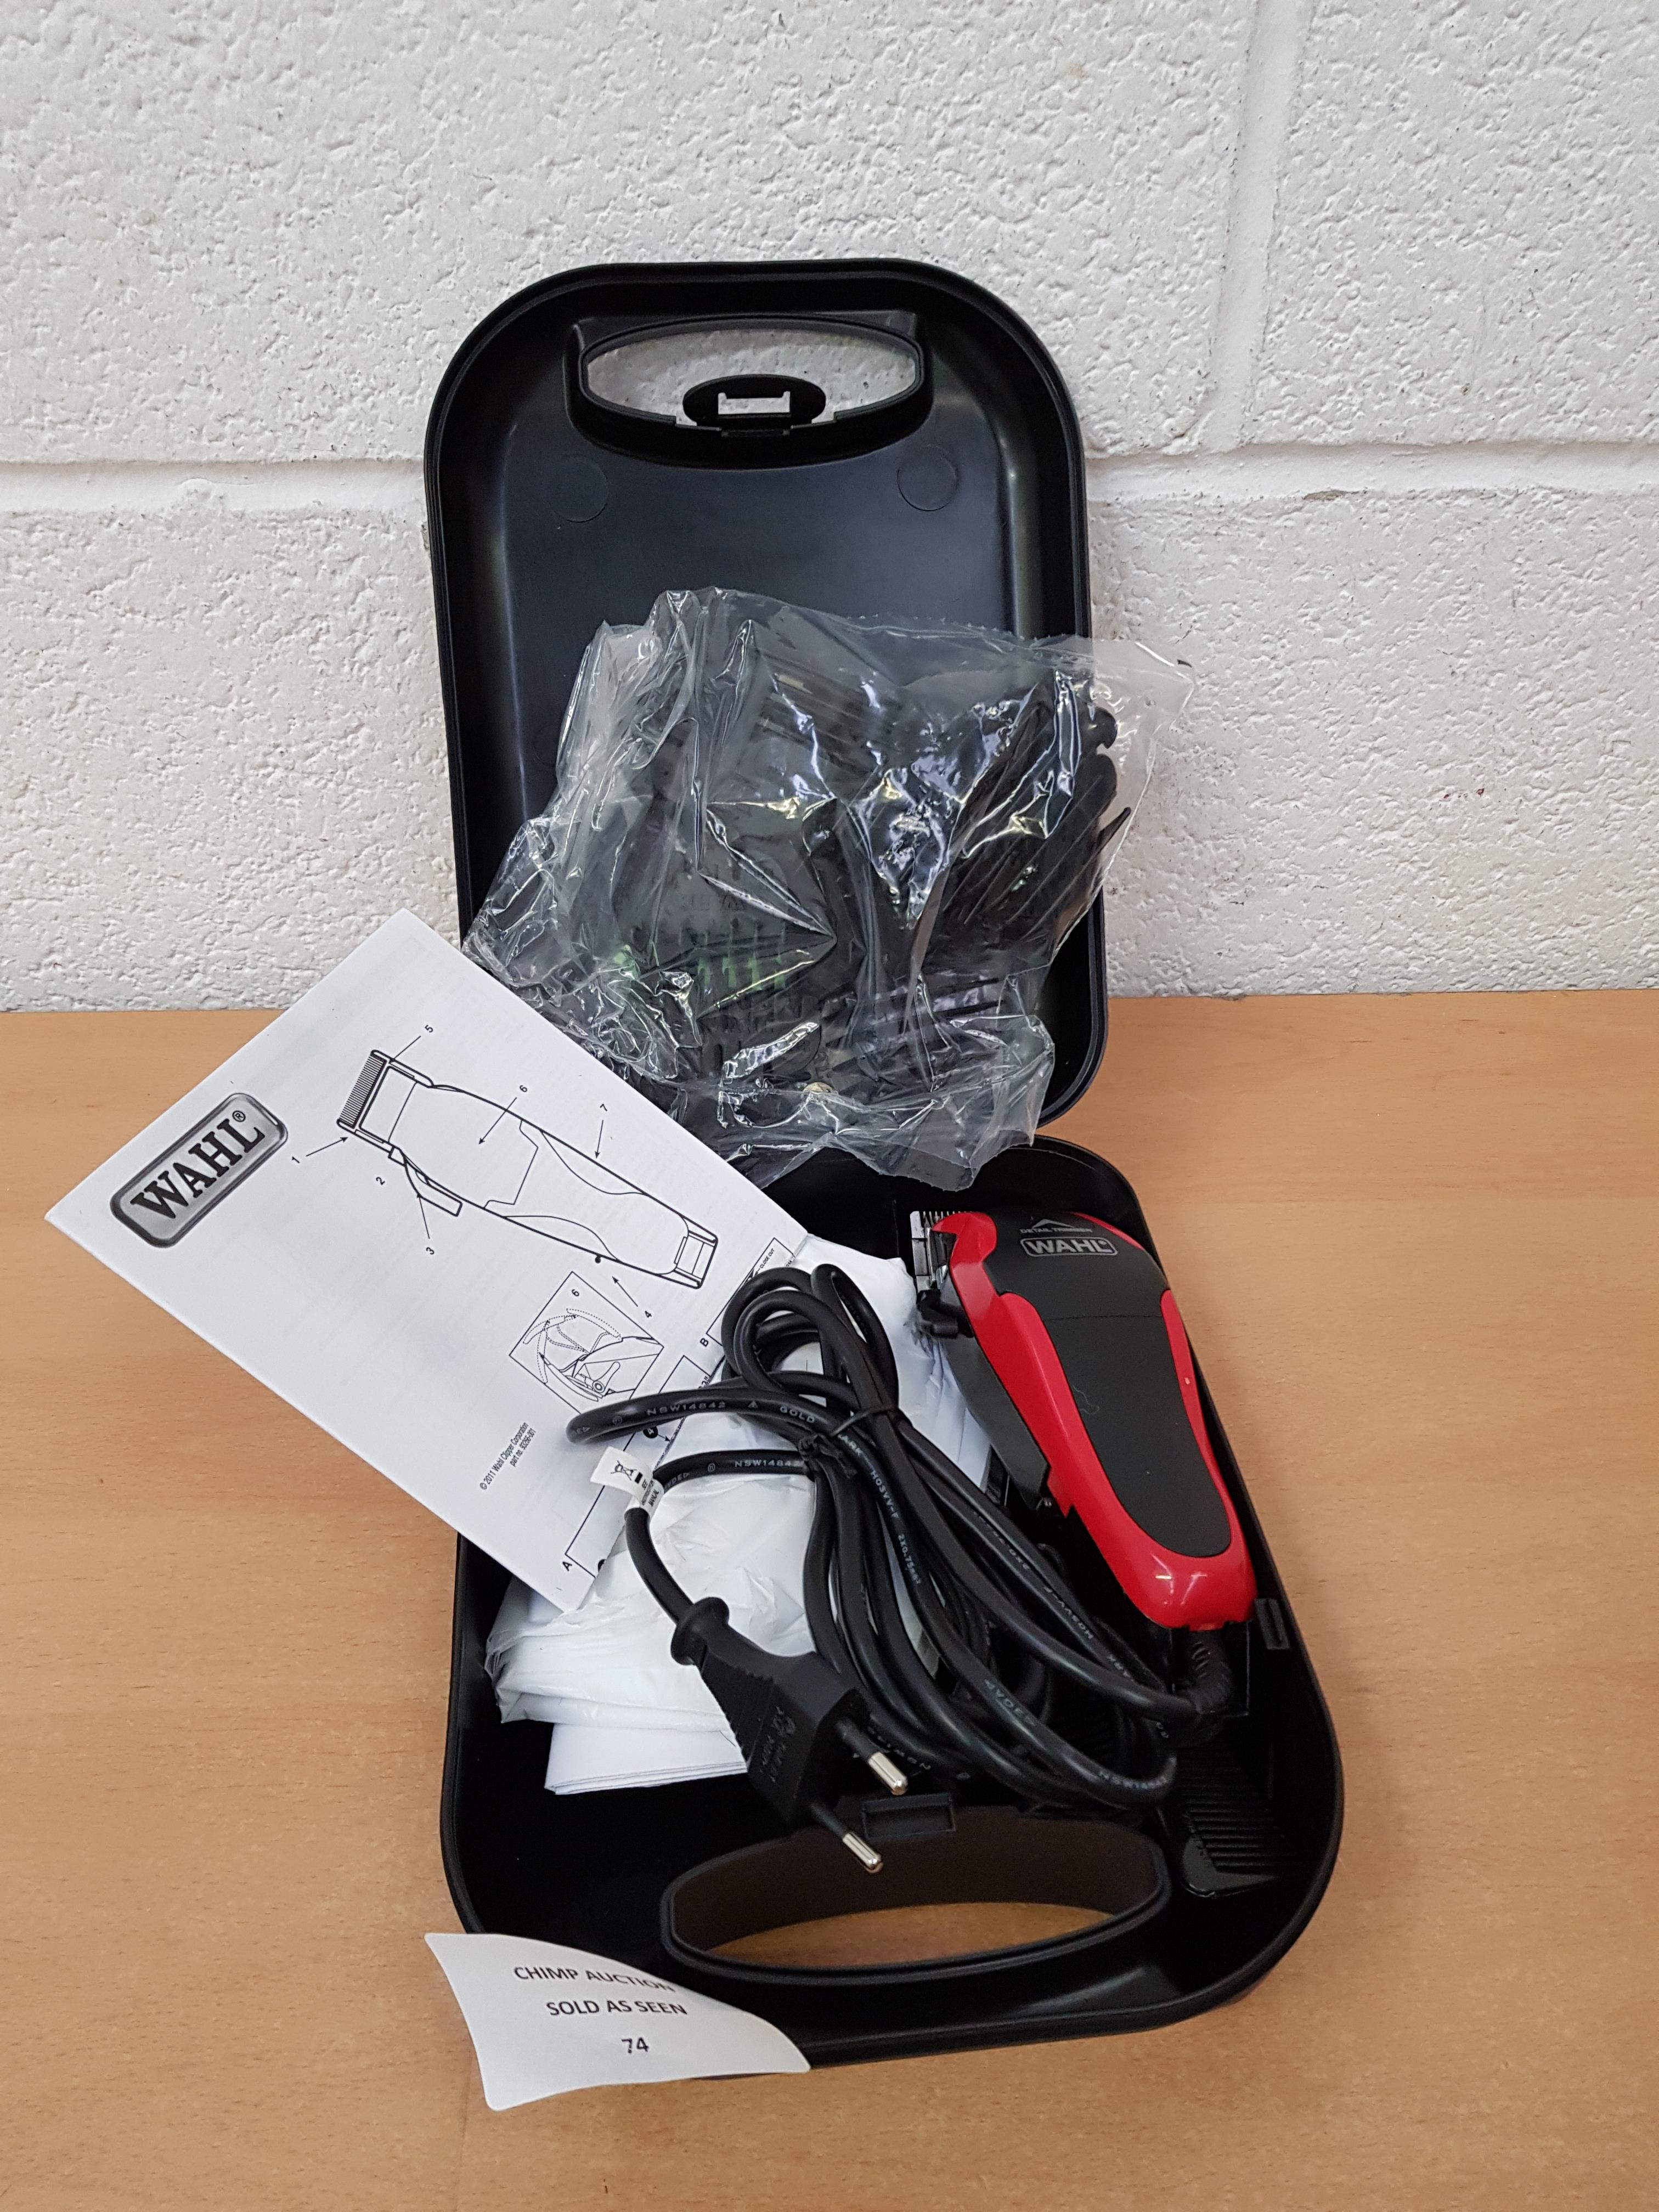 Lot 74 - Wahl Professional Detailer hair trimmer RRP £109.99.